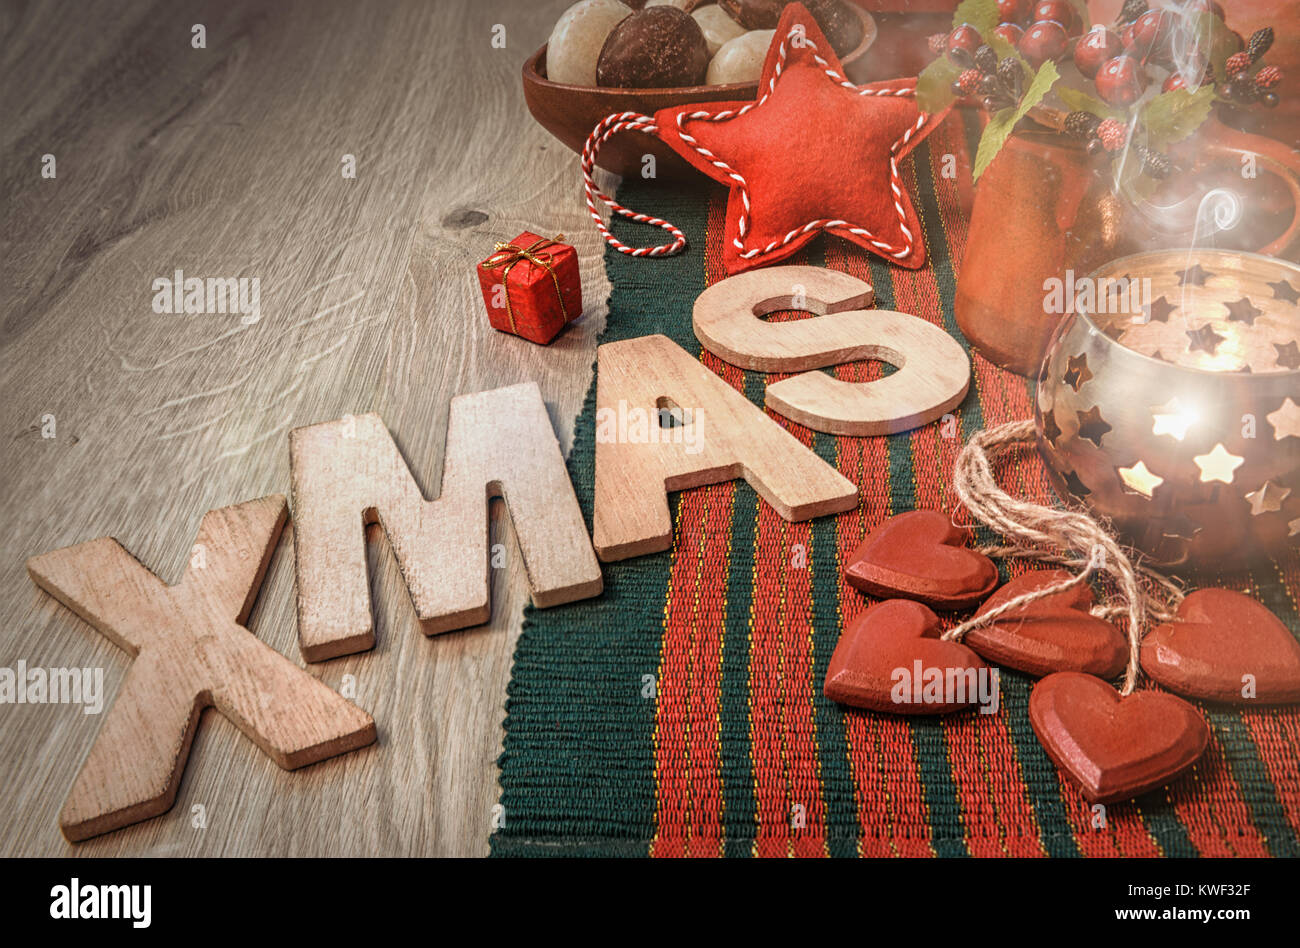 Xmas Wooden Letters And Christmas Decorations On Wood In Red And